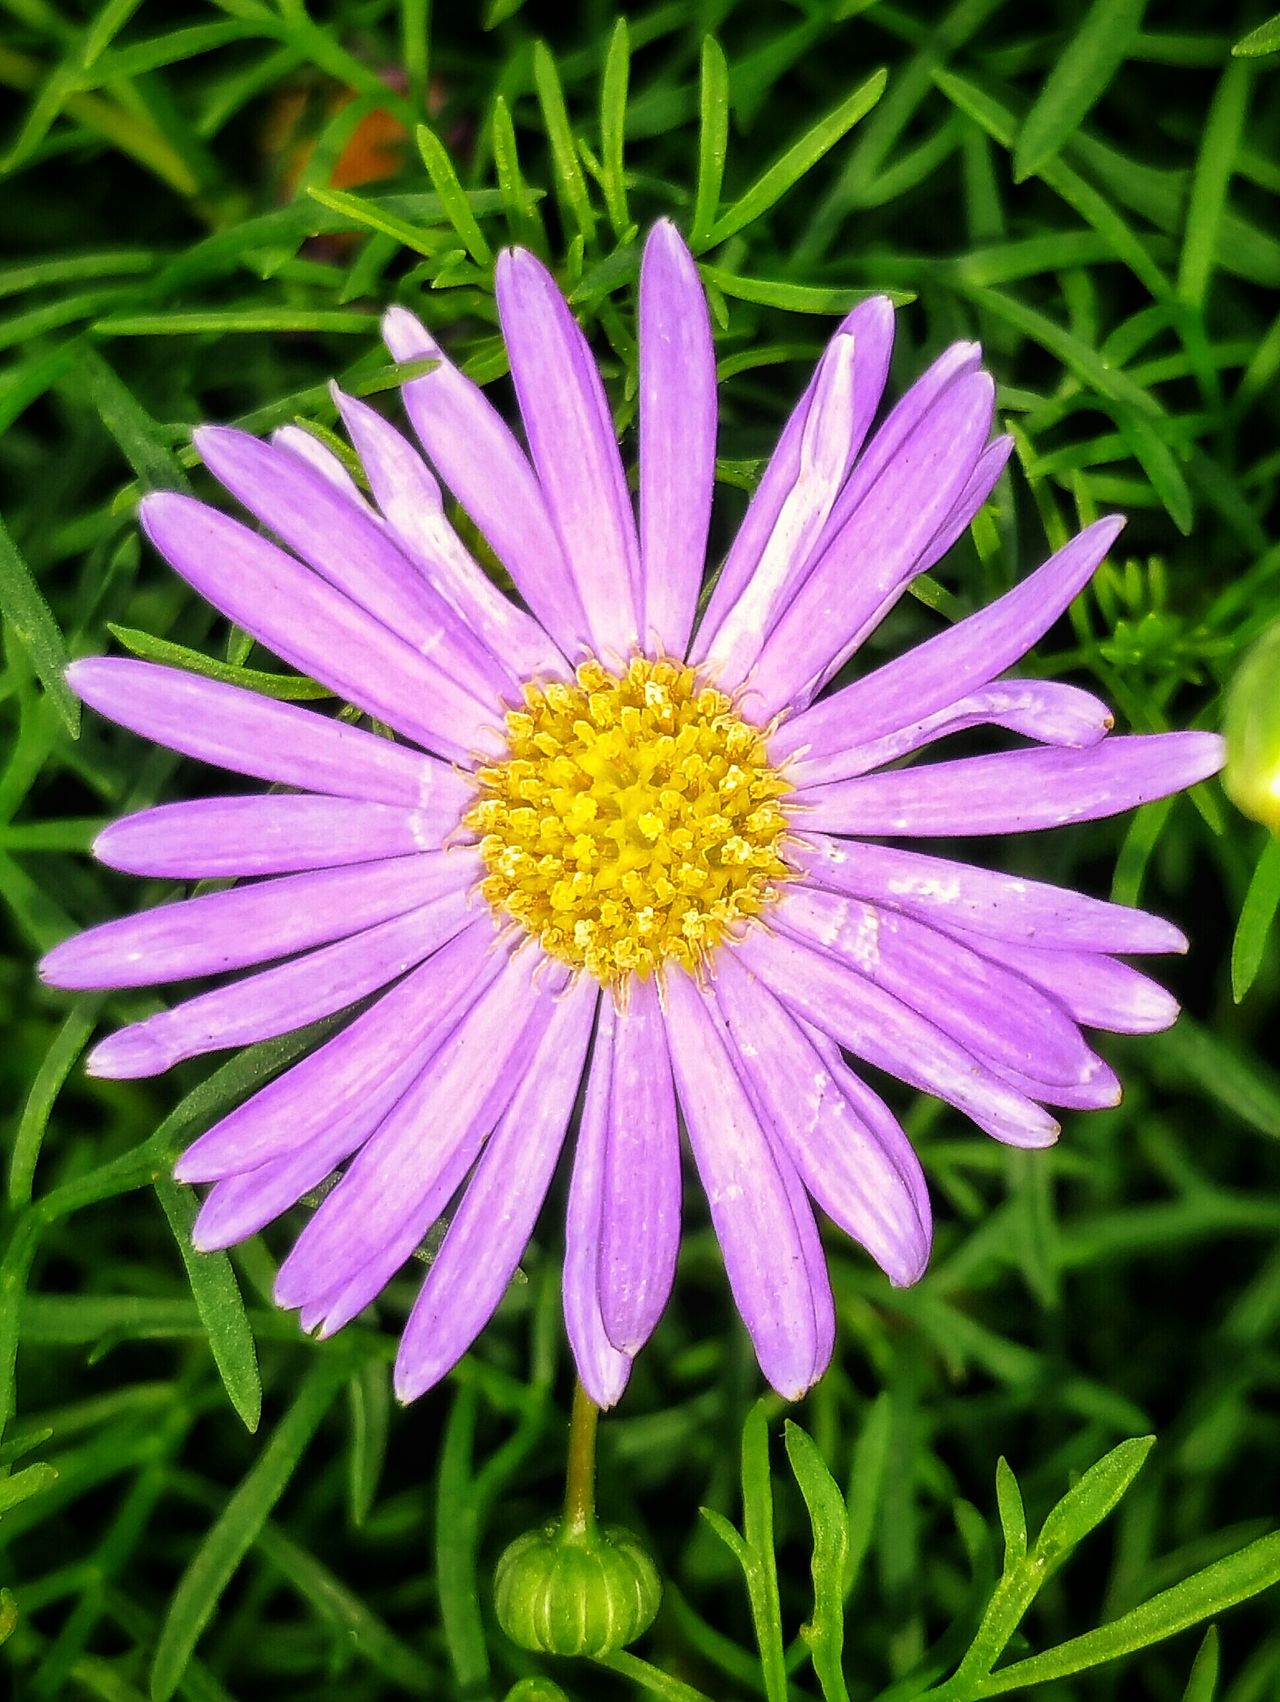 Saw this lovely pink wildflower while out for a walk reminds me of a wild Daisy Pink Daisy Pink Flower Wild Flower Photography Wild Flower Beauty Macro Beauty EyeEm Best Shots - Nature EyeEm Best Shots - HDR Hdr_captures Malephotographerofthemonth EyeEm Masterclass Close-up Close Up Photography Creative Light And Shadow Color Photography Beauty In Nature Macro Photography Close Up The Beauty Of Nature Flower Close Up Flower Head Flower Collection EyeEm Flowers Collection Colour Of Life Color Palette